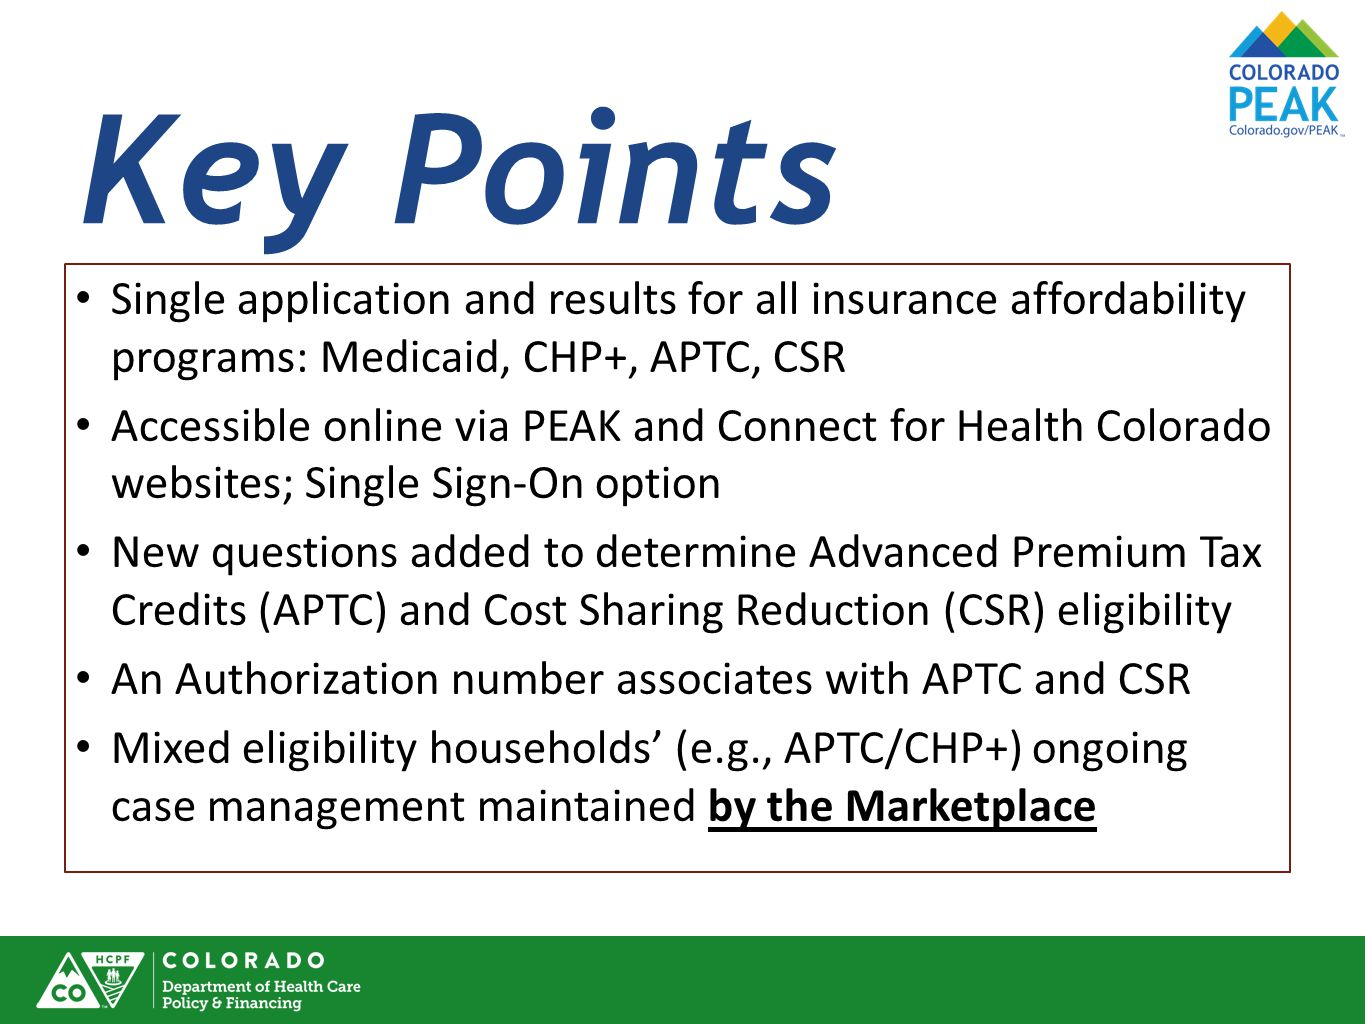 Key Points Single application and results for all insurance affordability programs: Medicaid, CHP+, APTC, CSR Accessible online via PEAK and Connect for Health Colorado websites; Single Sign-On option New questions added to determine Advanced Premium Tax Credits (APTC) and Cost Sharing Reduction (CSR) eligibility An Authorization number associates with APTC and CSR Mixed eligibility households' (e.g., APTC/CHP+) ongoing case management maintained by the Marketplace